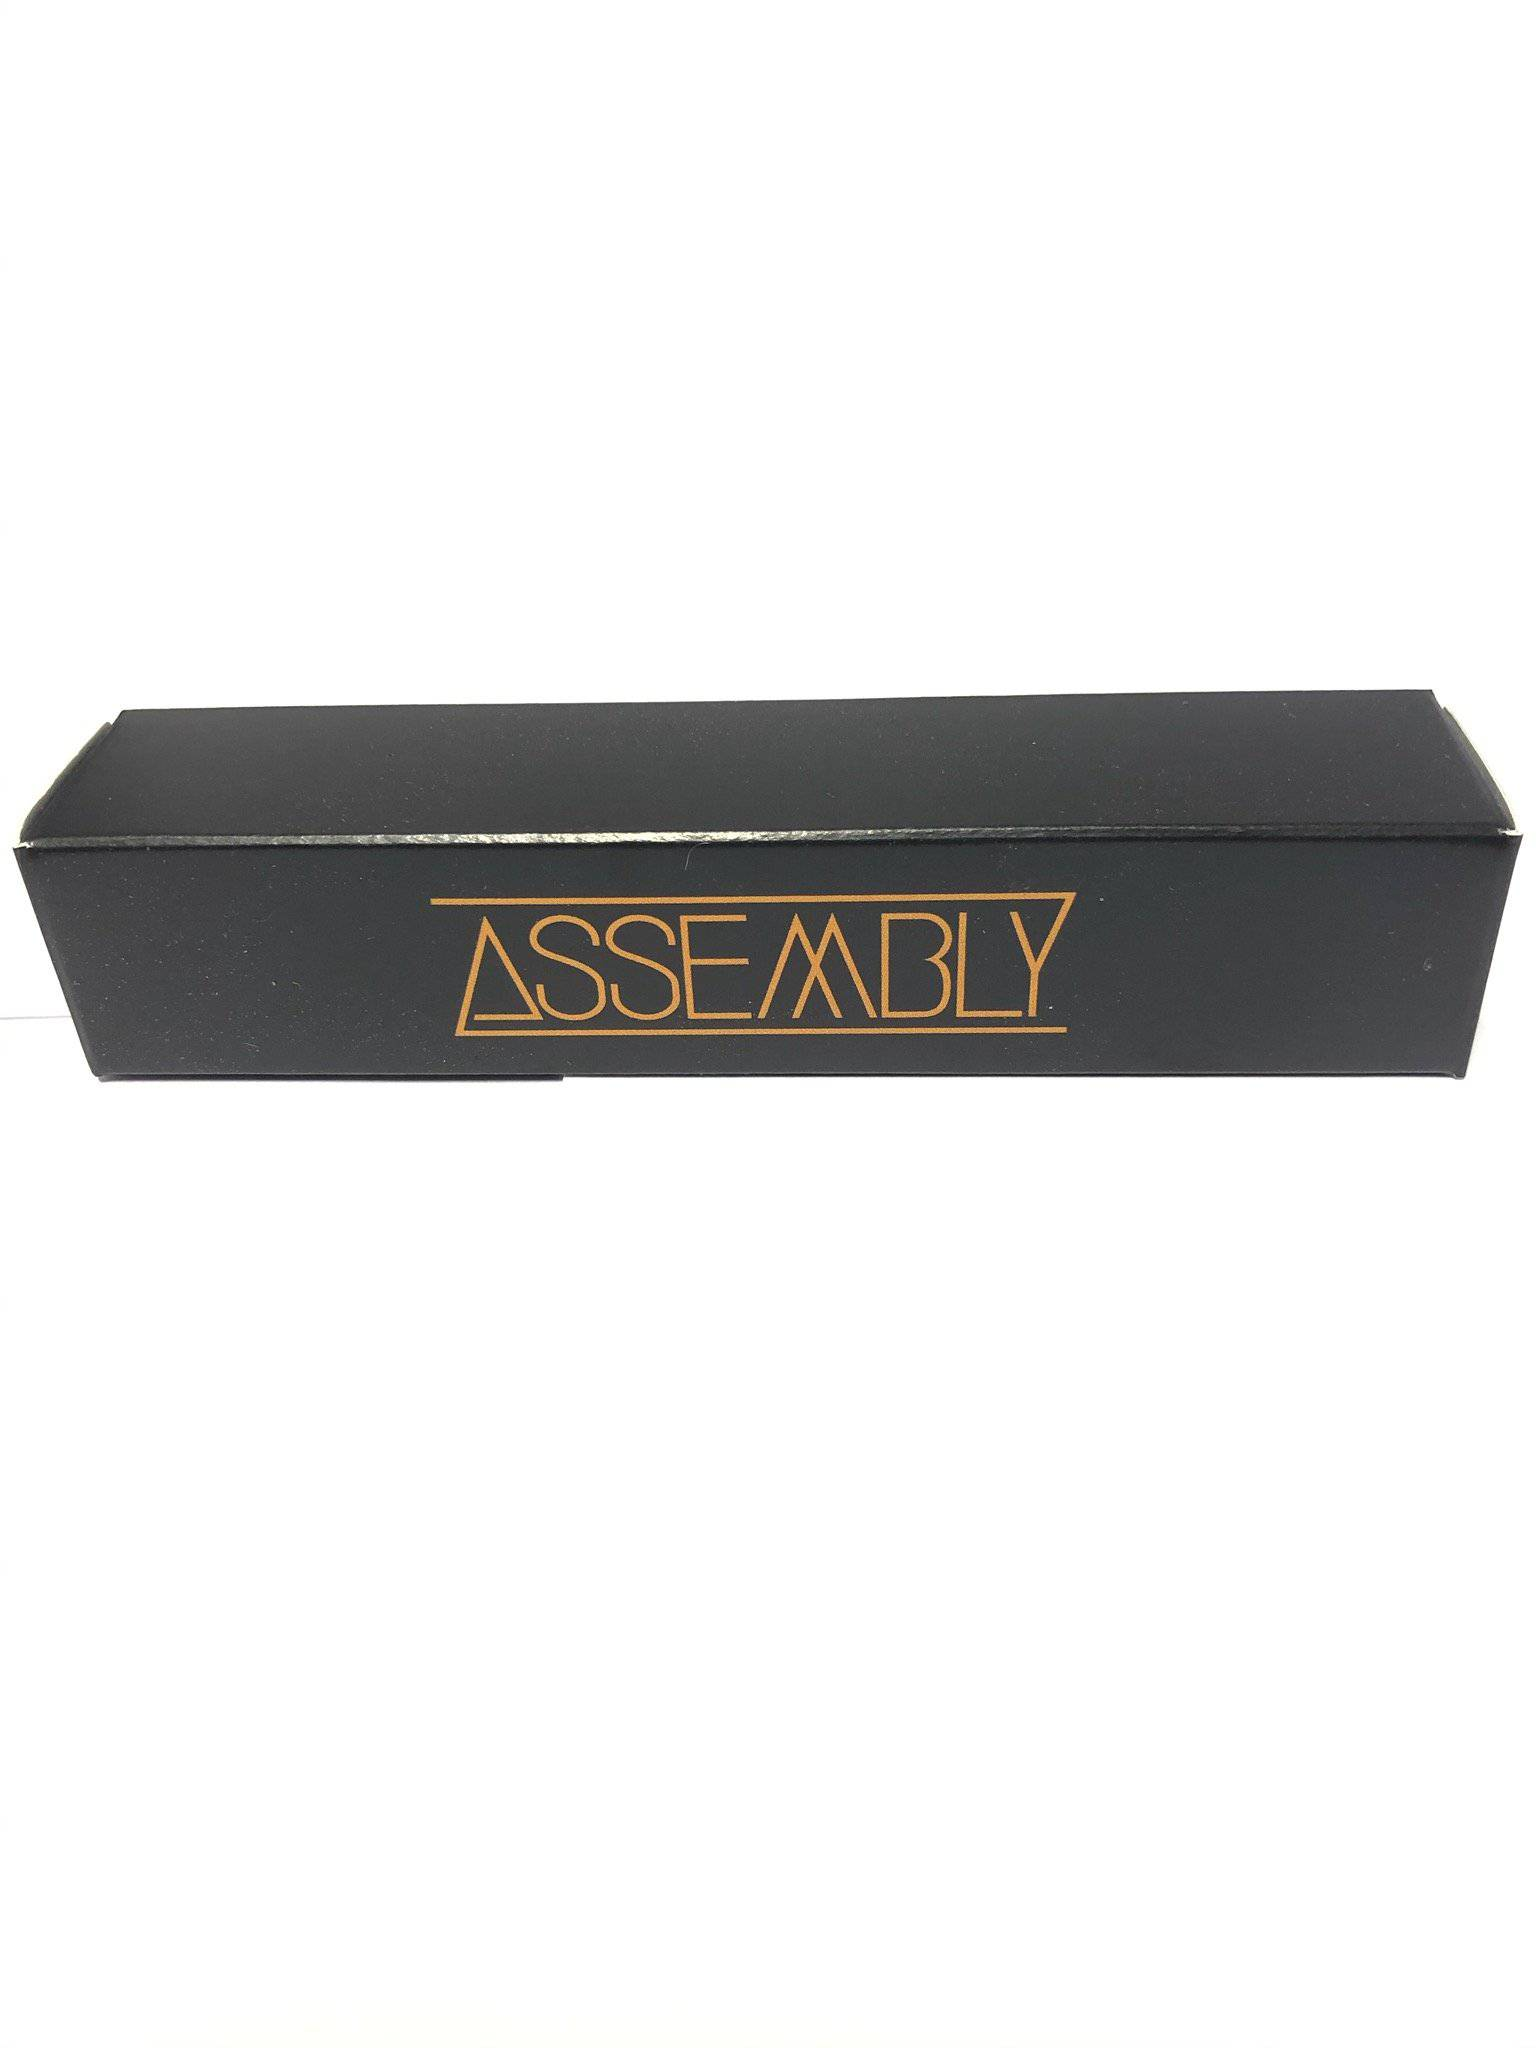 Assembly Flower Live Resin Vape Cartridge 1 GRAM - Jack Herer - The Balloon Room